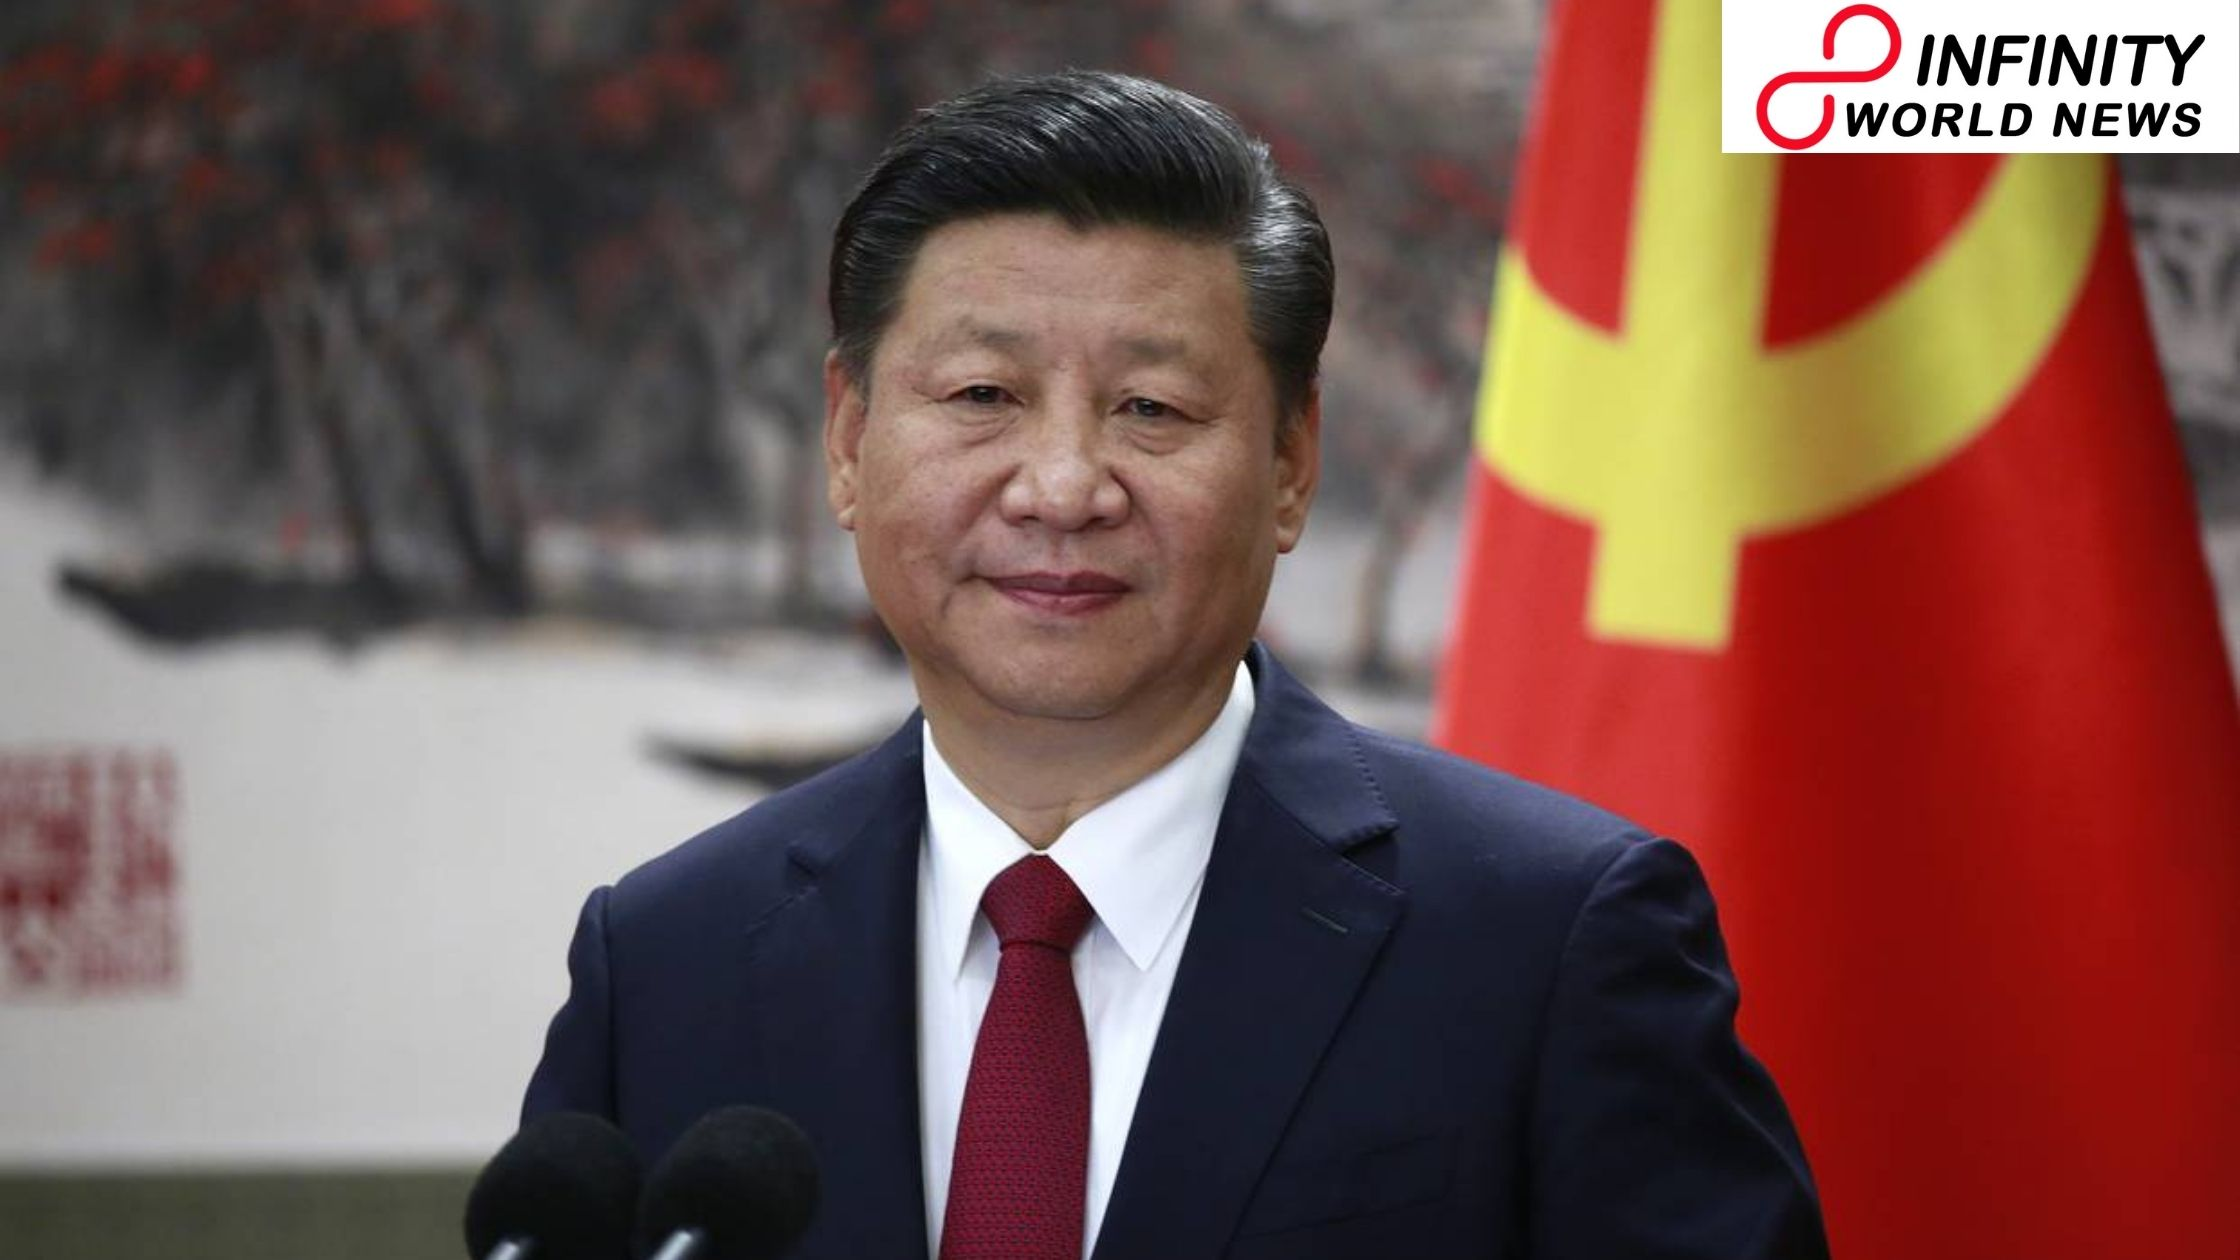 China's proposal for withdrawal in East Ladakh is a snare. Dismissed